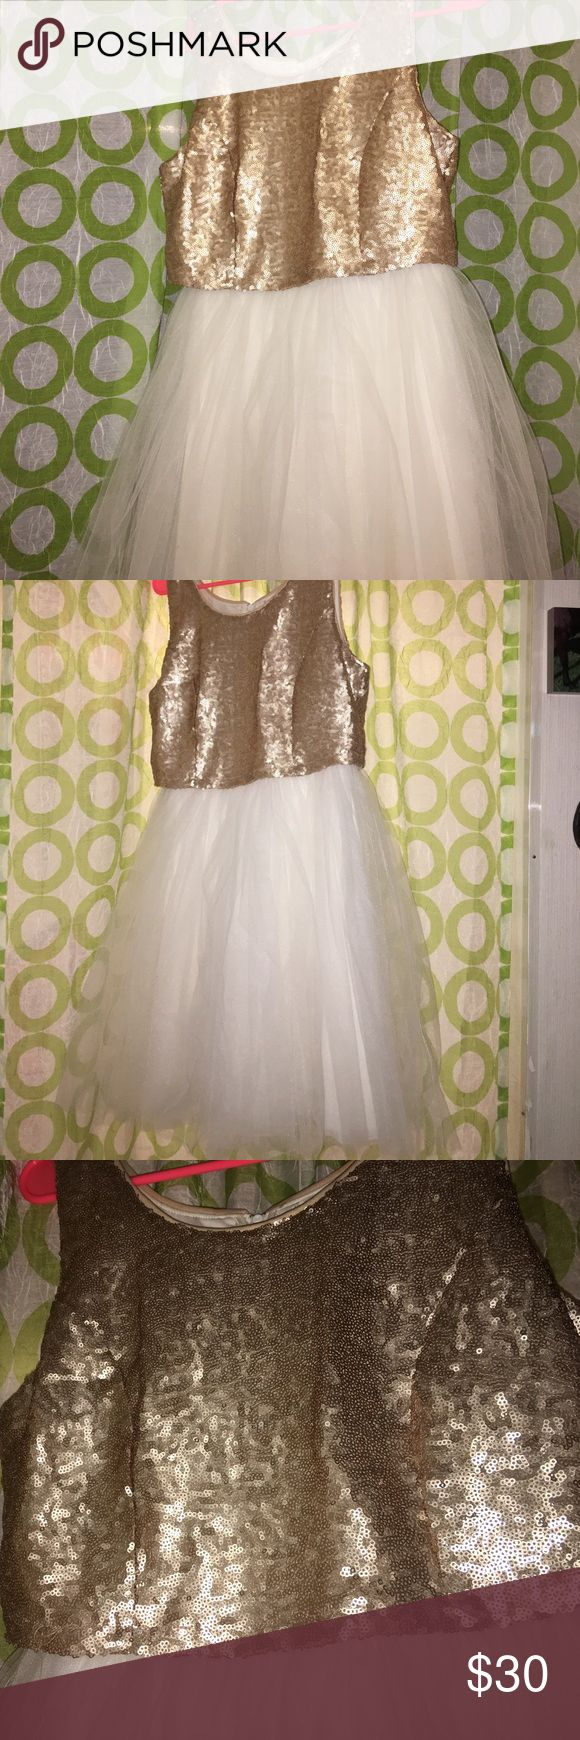 Gold Sequin and White Tool Homecoming/Party Dress Gorgeous White tool dress with a gold sequins top fit with thick straps. HAS BEEN ALTERED TO BE ABOUT A HALF INCH SHORTER THEN ORIGINAL! Worn once to a wedding. PRICE IS NEGOTIABLE IF THE PROCE DOSENT WORK FOR YOU LEAVE A SUGGESTION :) Emerald Sundae Dresses Mini